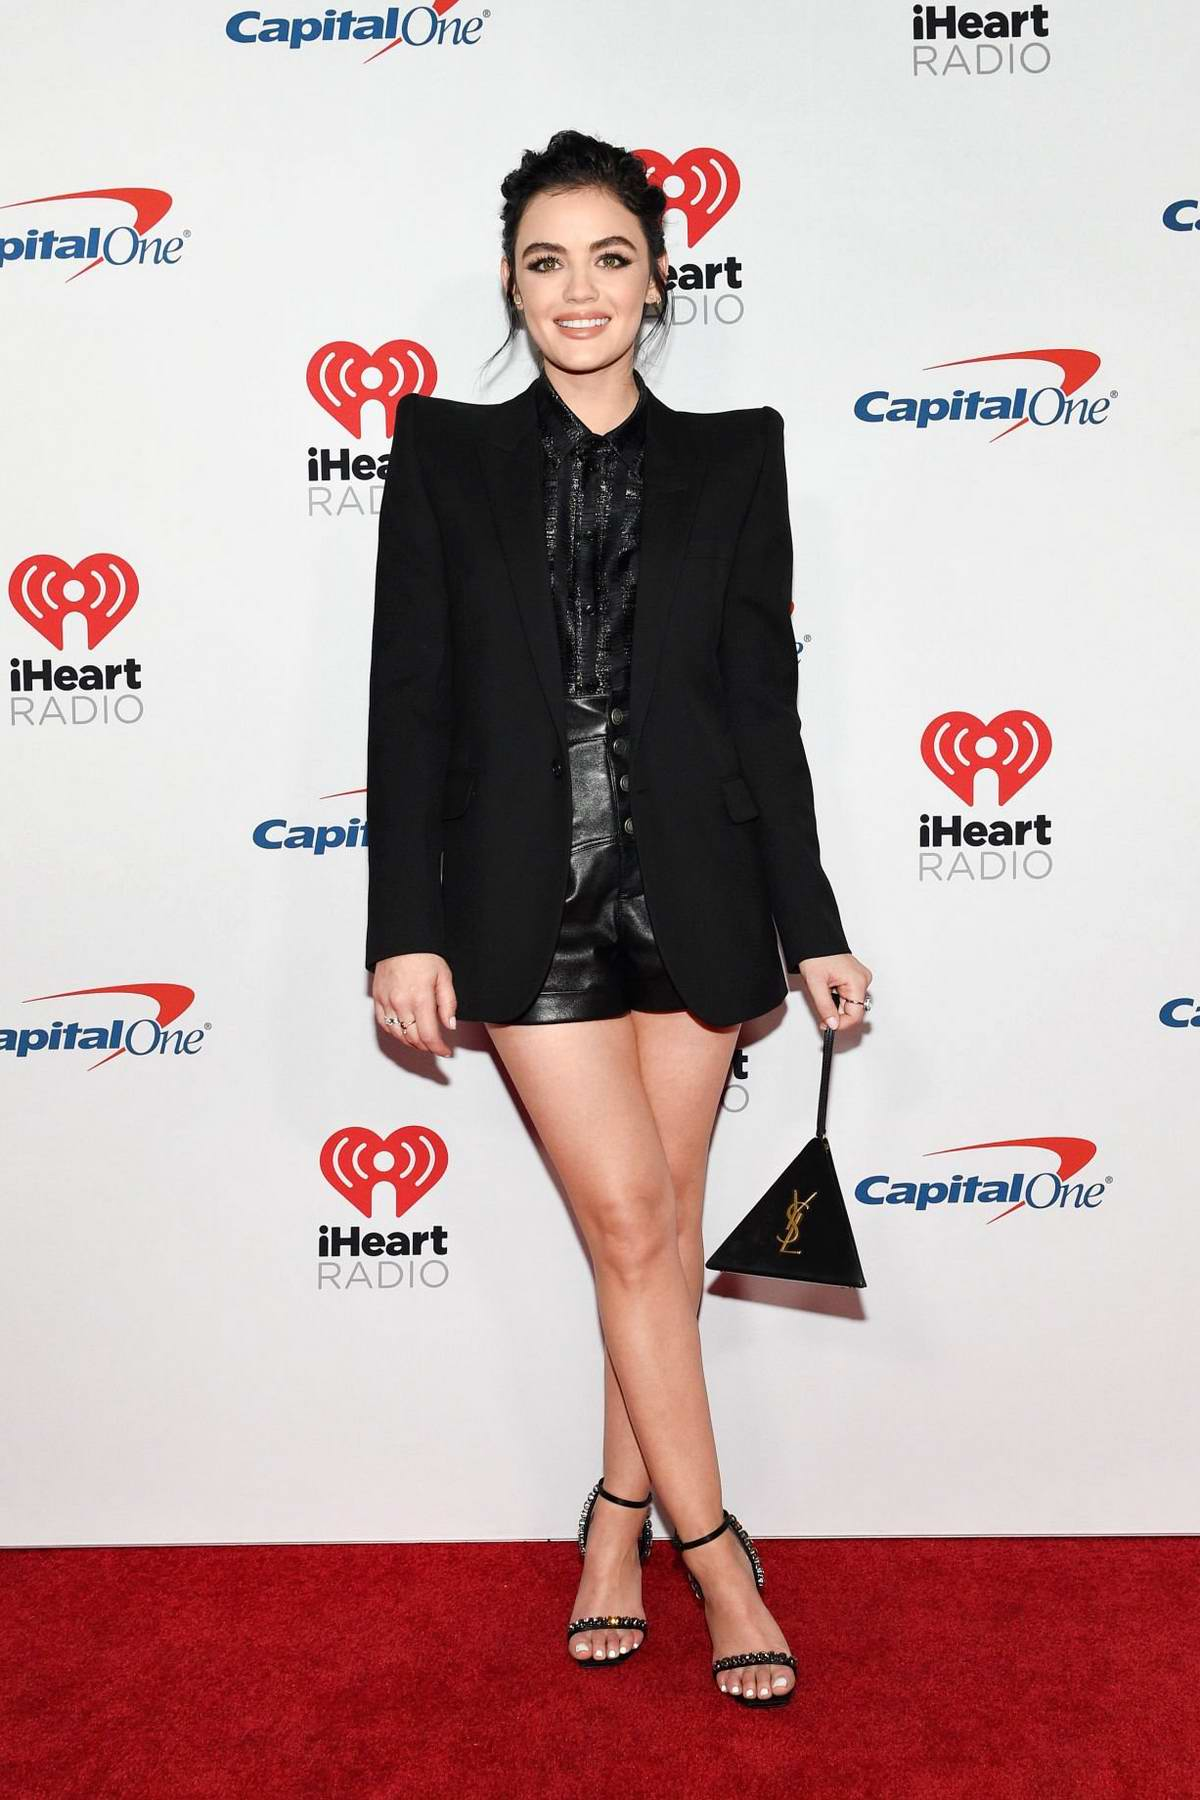 Lucy Hale attends the 2019 iHeartRadio Music Festival at T-Mobile Arena in Las Vegas, Nevada